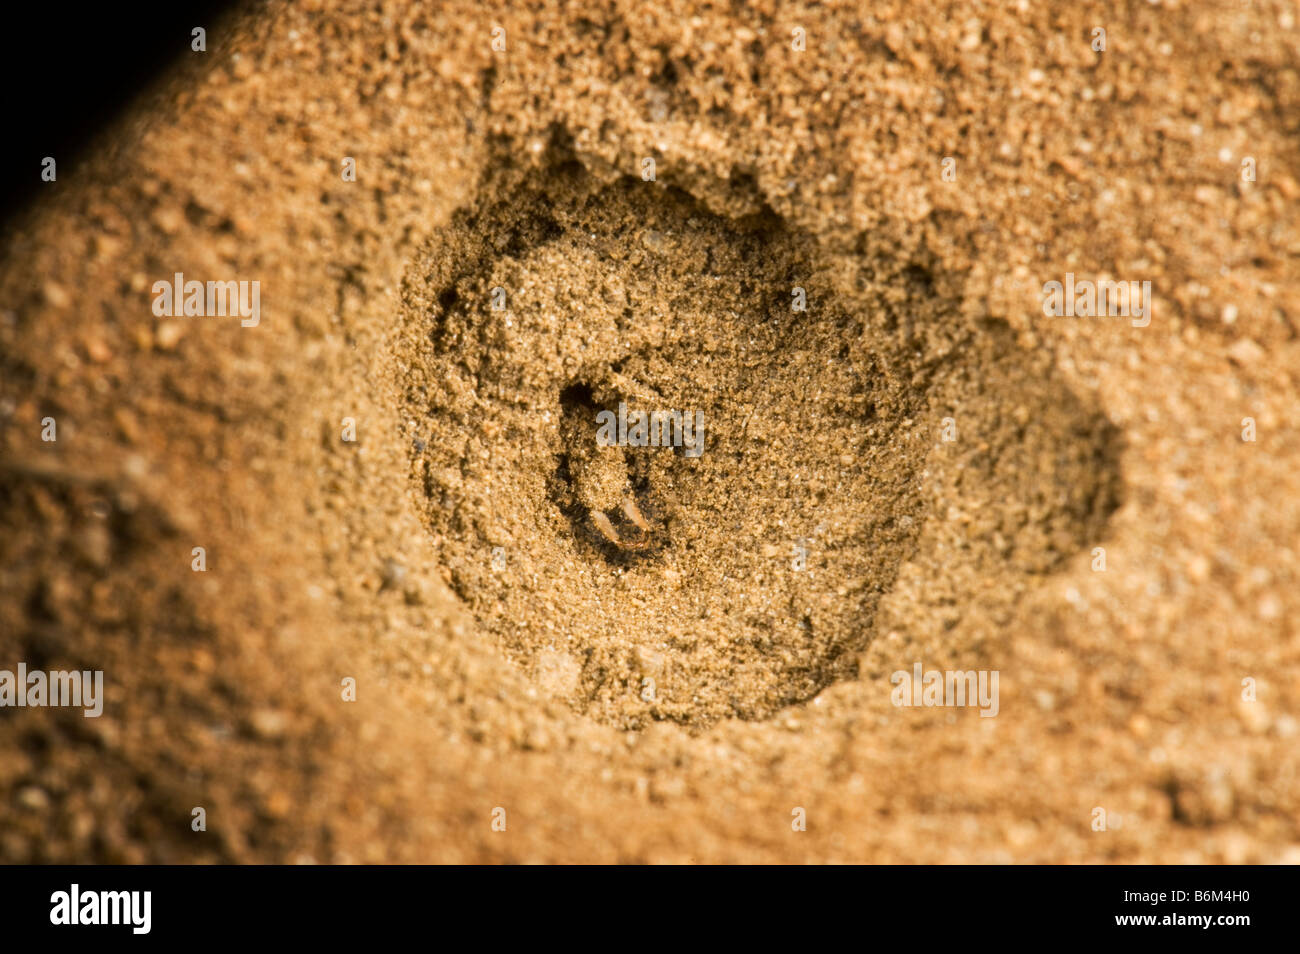 wild wildlife ant lion makro macro sandhole ambience south-africa conical pit soft sandy soil to trap insects white - Stock Image